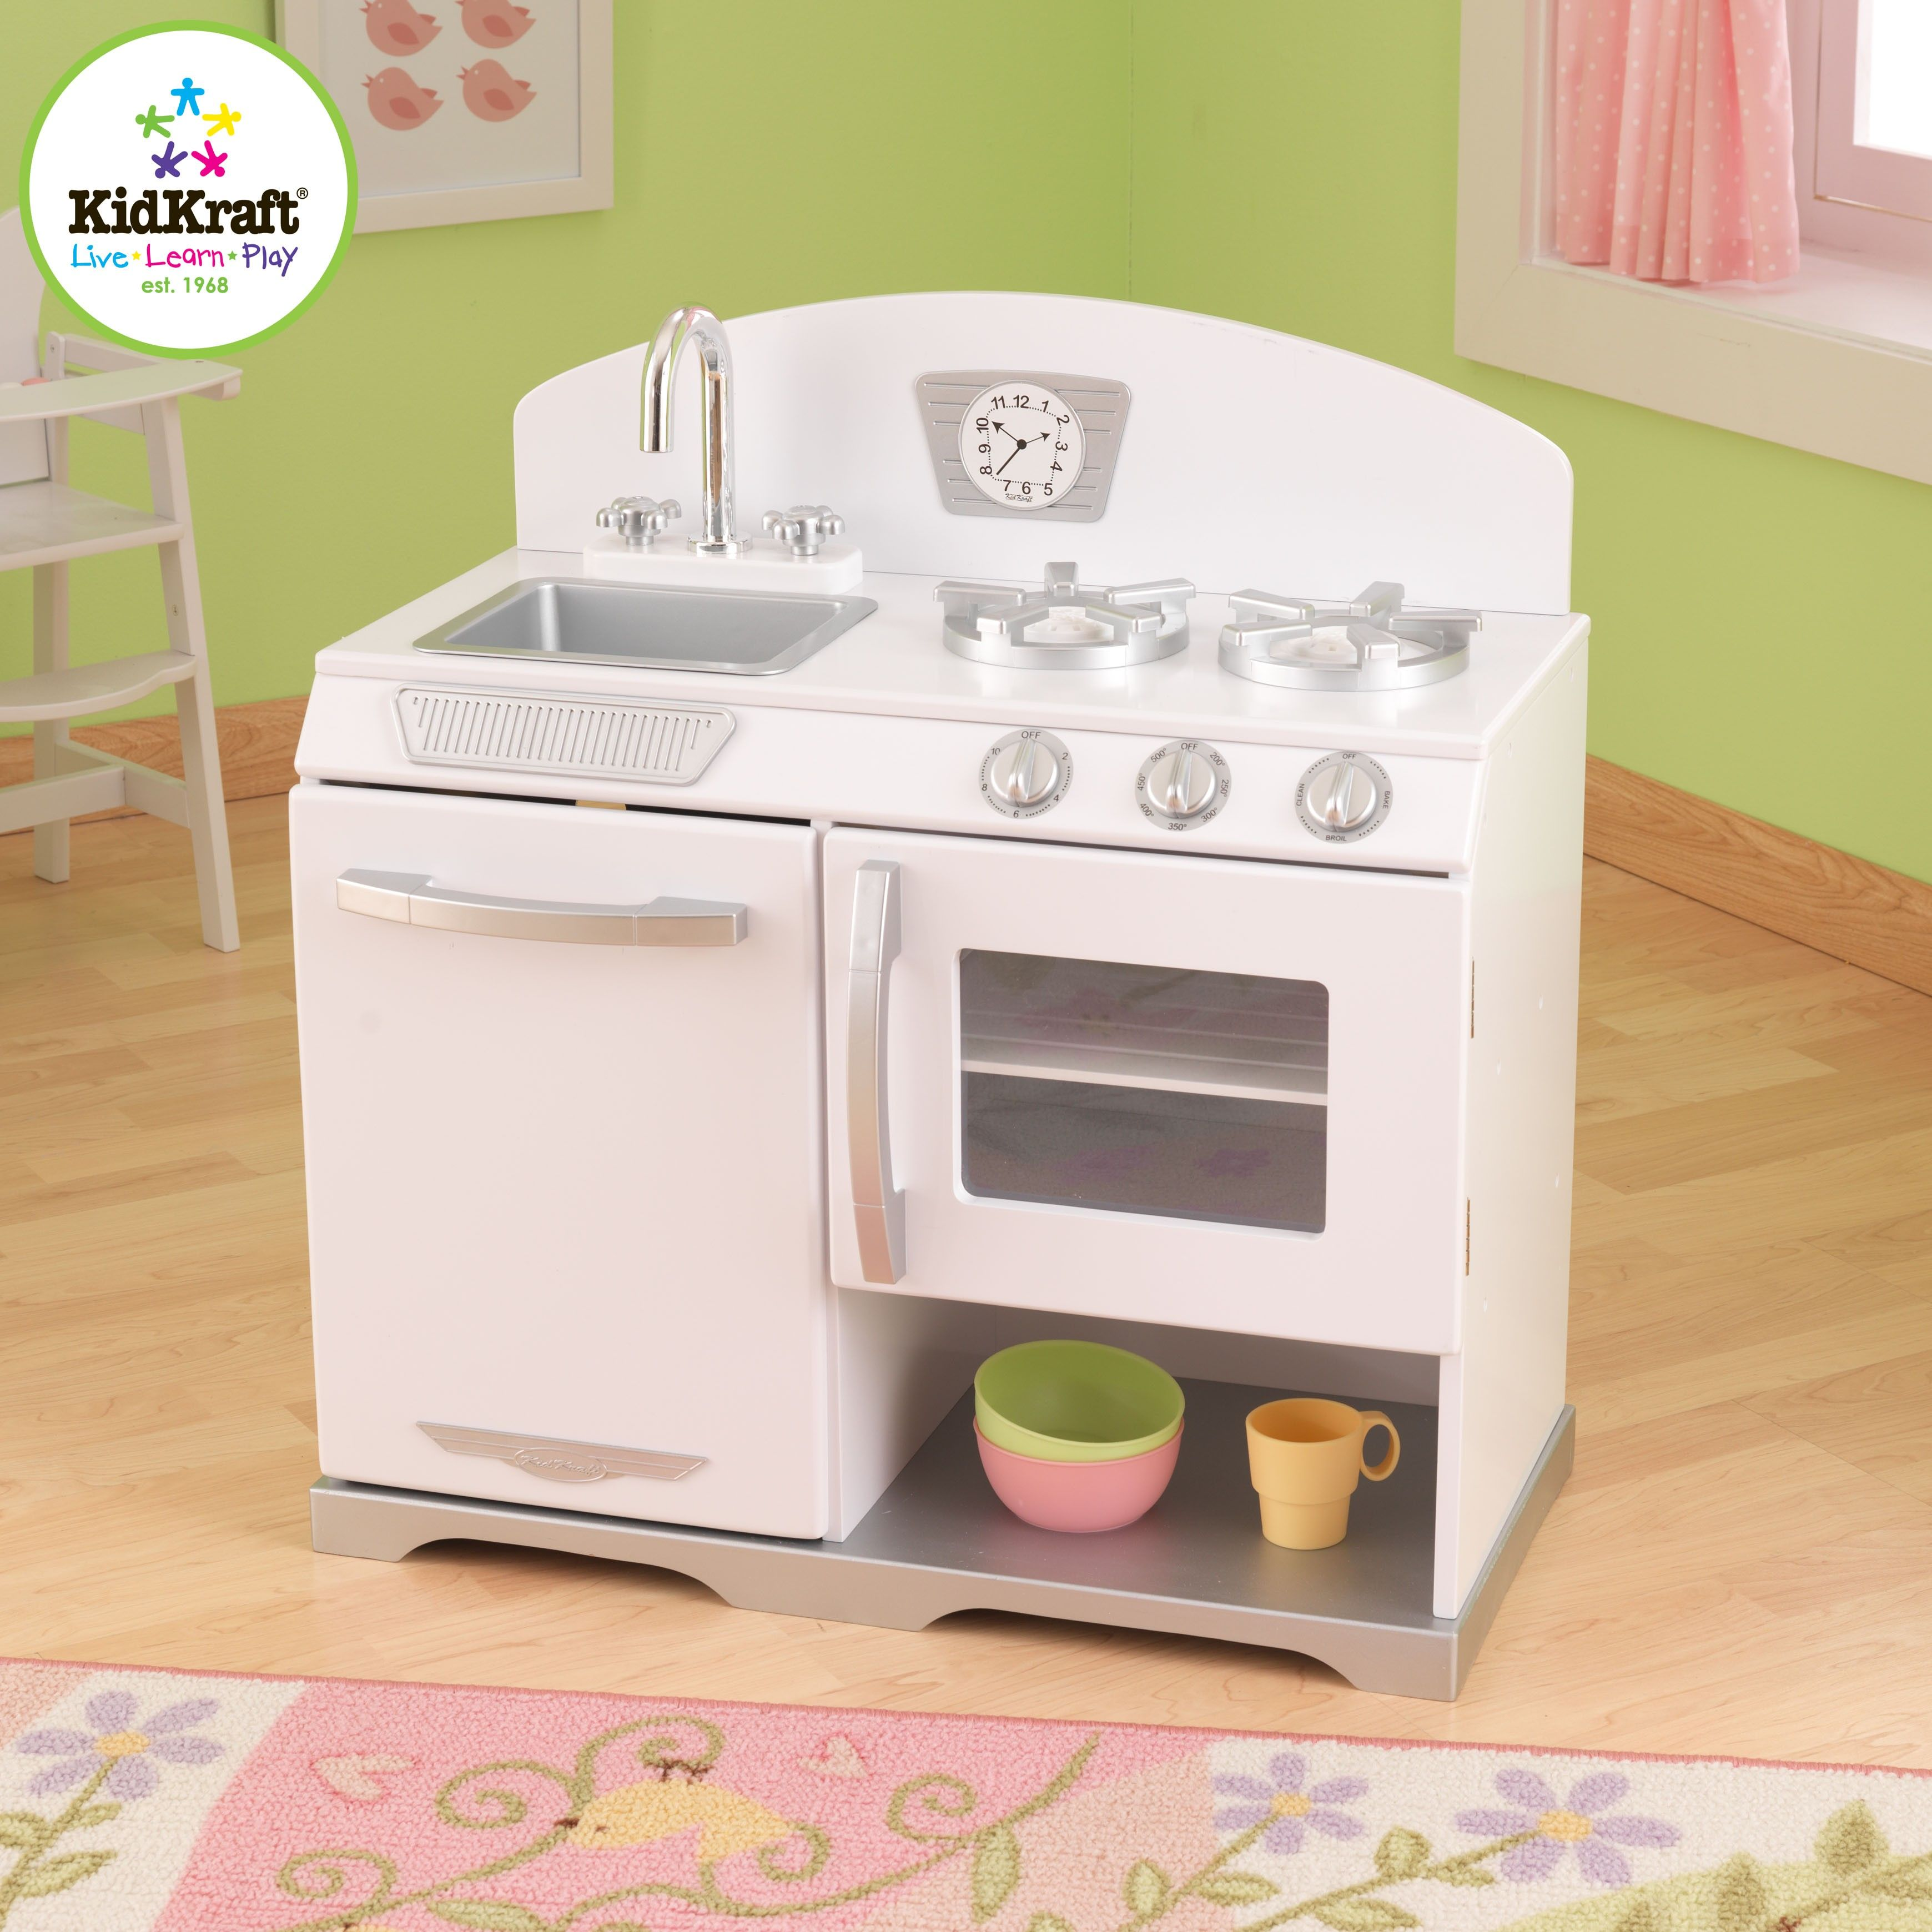 Toys for kids kitchen set  Horno Retro Blanco offemily  Wood kitchen toy kids  Pinterest